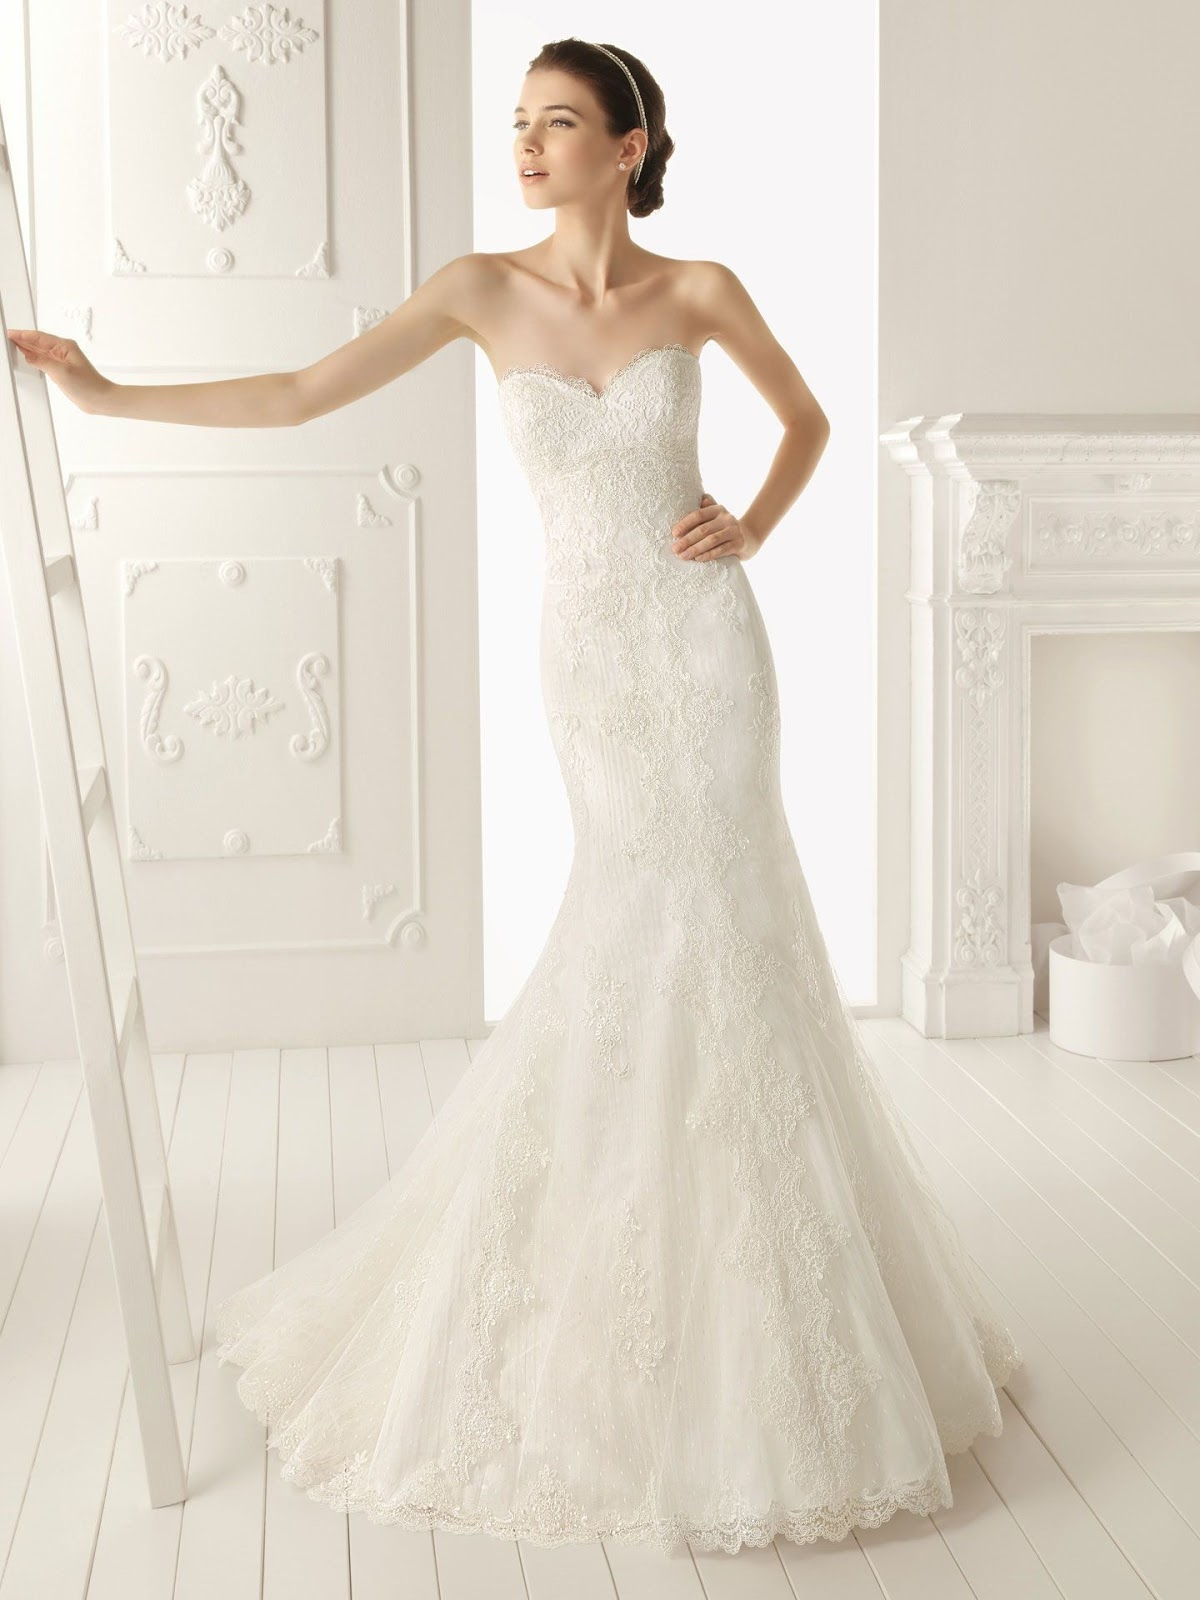 Lace Mermaid Wedding Dress 2013 - Missy Dress